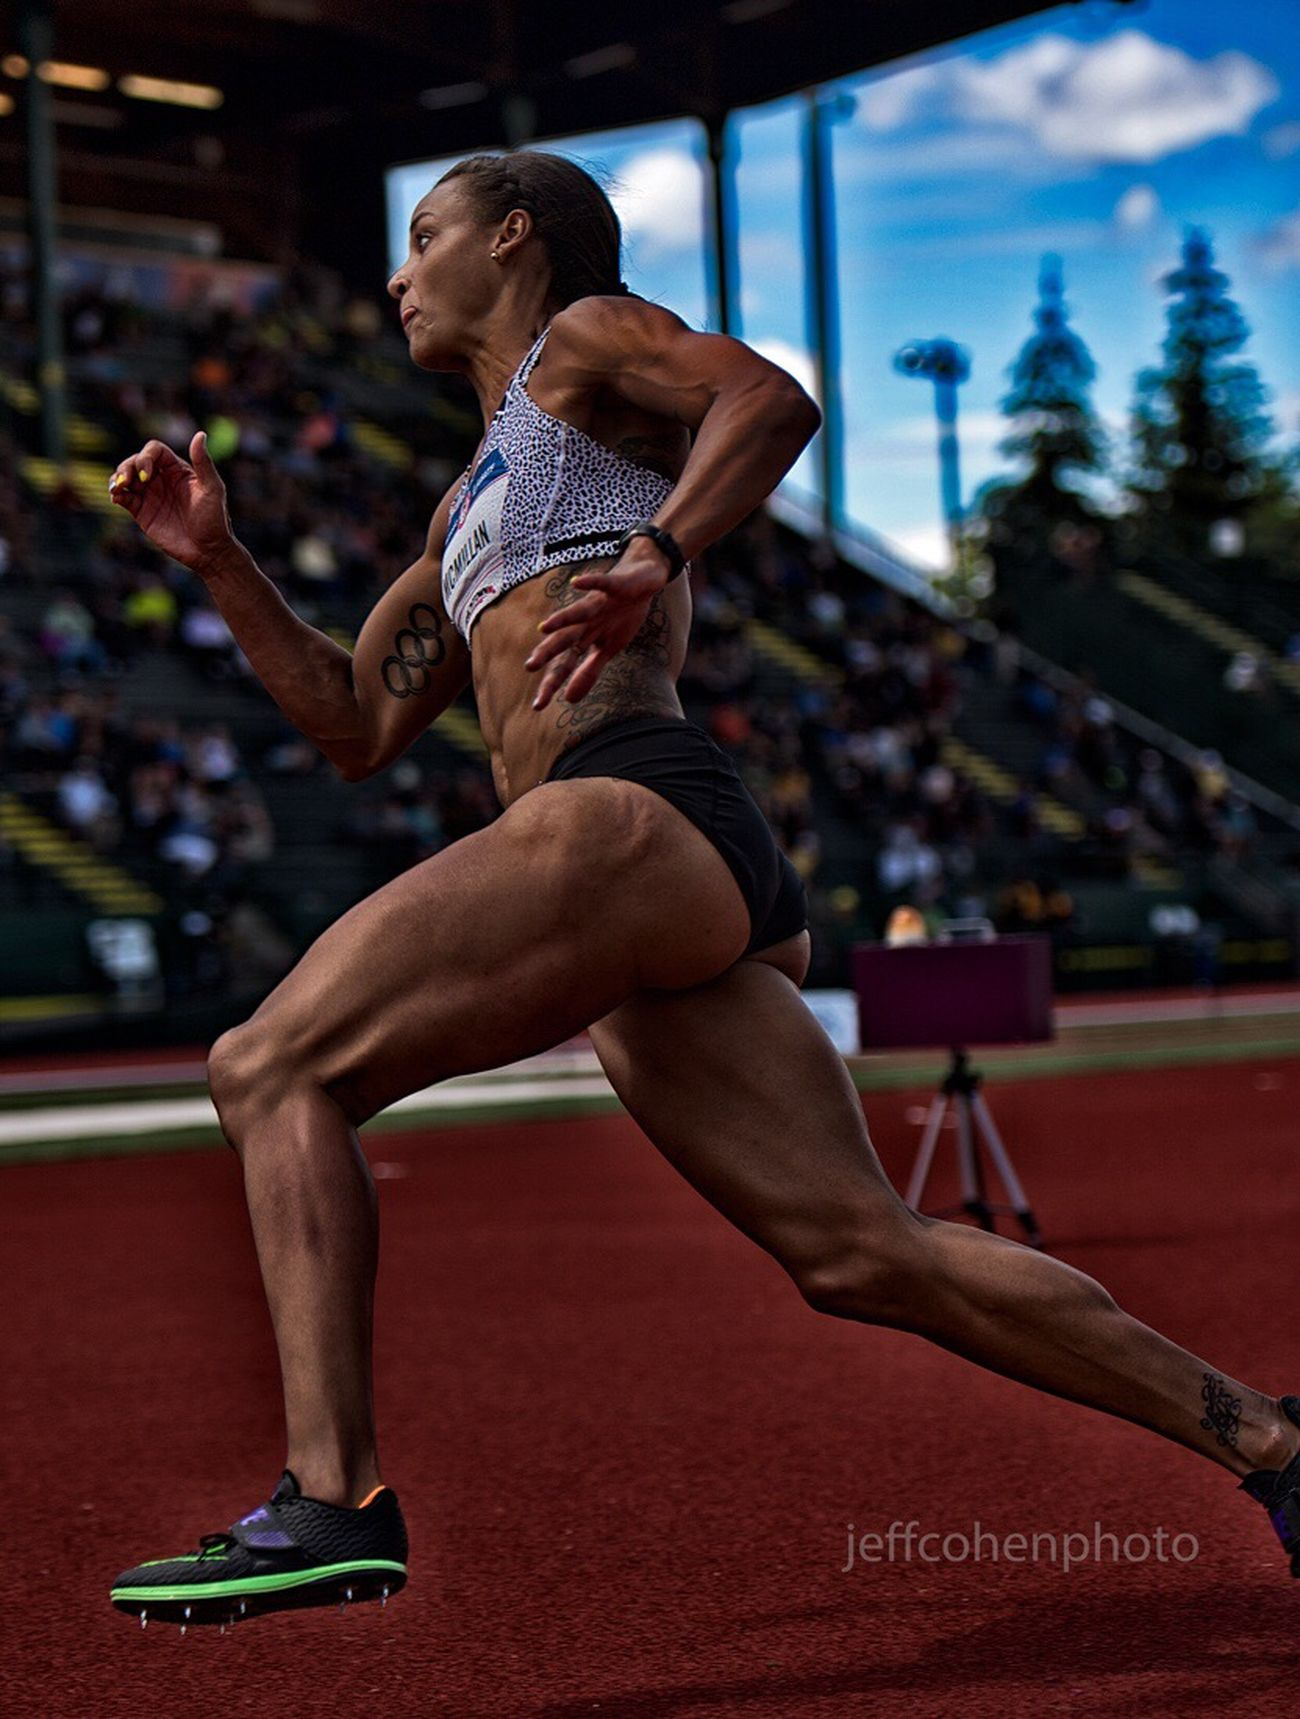 Chantae Mcmillan USA Olympian decathlete Jeffcohenphoto Athlete Sport Track And Field Athlete Olympian Jeffcohenphoto Usatf Trackandfield Trackgirl Iaaf Fitness Nikon SportsPhotographer